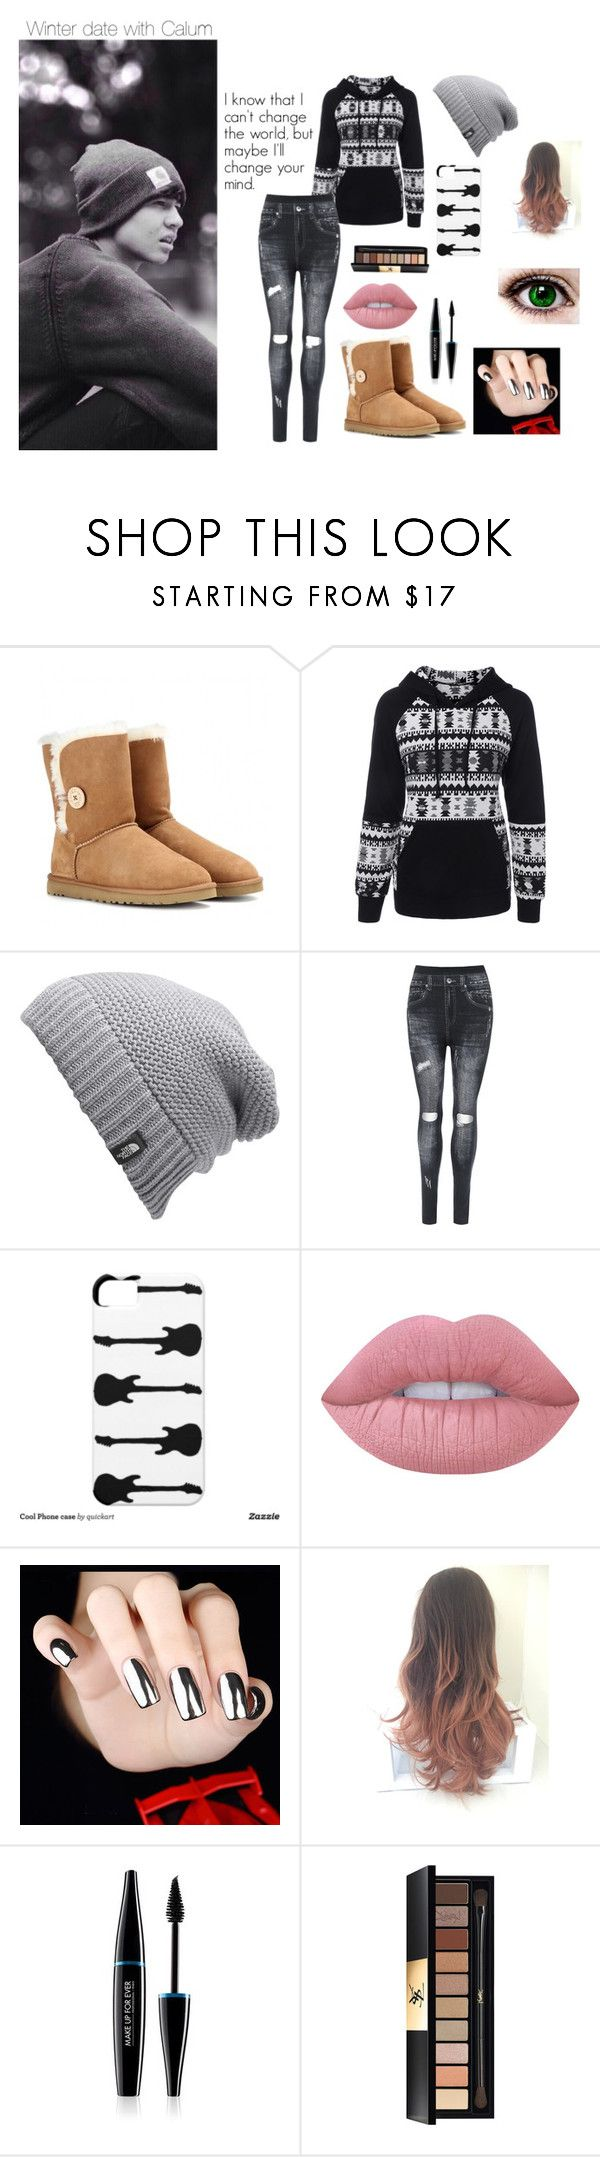 """""""Winter date with Calum"""" by ashtonxfletcher ❤ liked on Polyvore featuring beauty, UGG Australia, The North Face, WearAll, Lime Crime, MAKE UP FOR EVER, Yves Saint Laurent, Winter, calumhood and poop"""